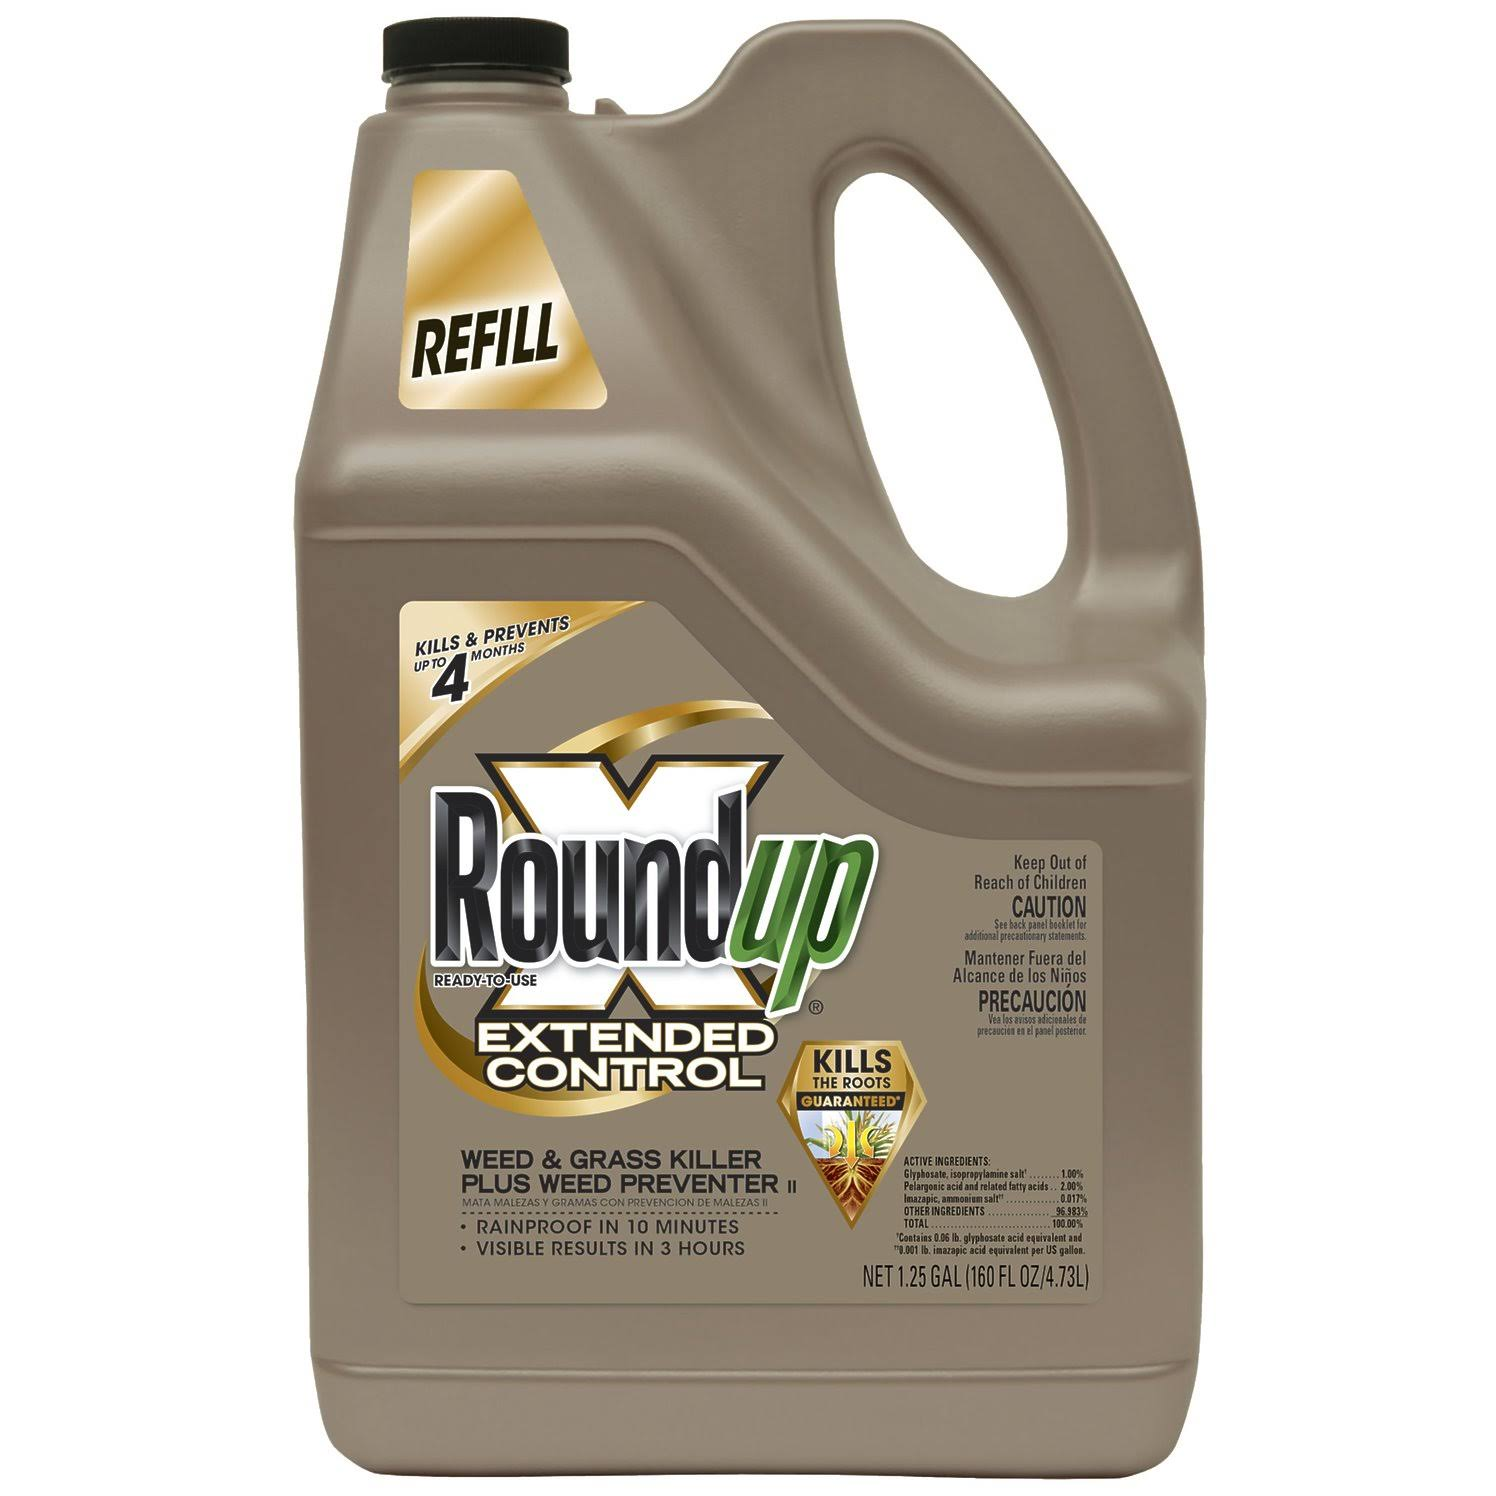 Roundup Extended Control Weed and Grass Killer - 160oz